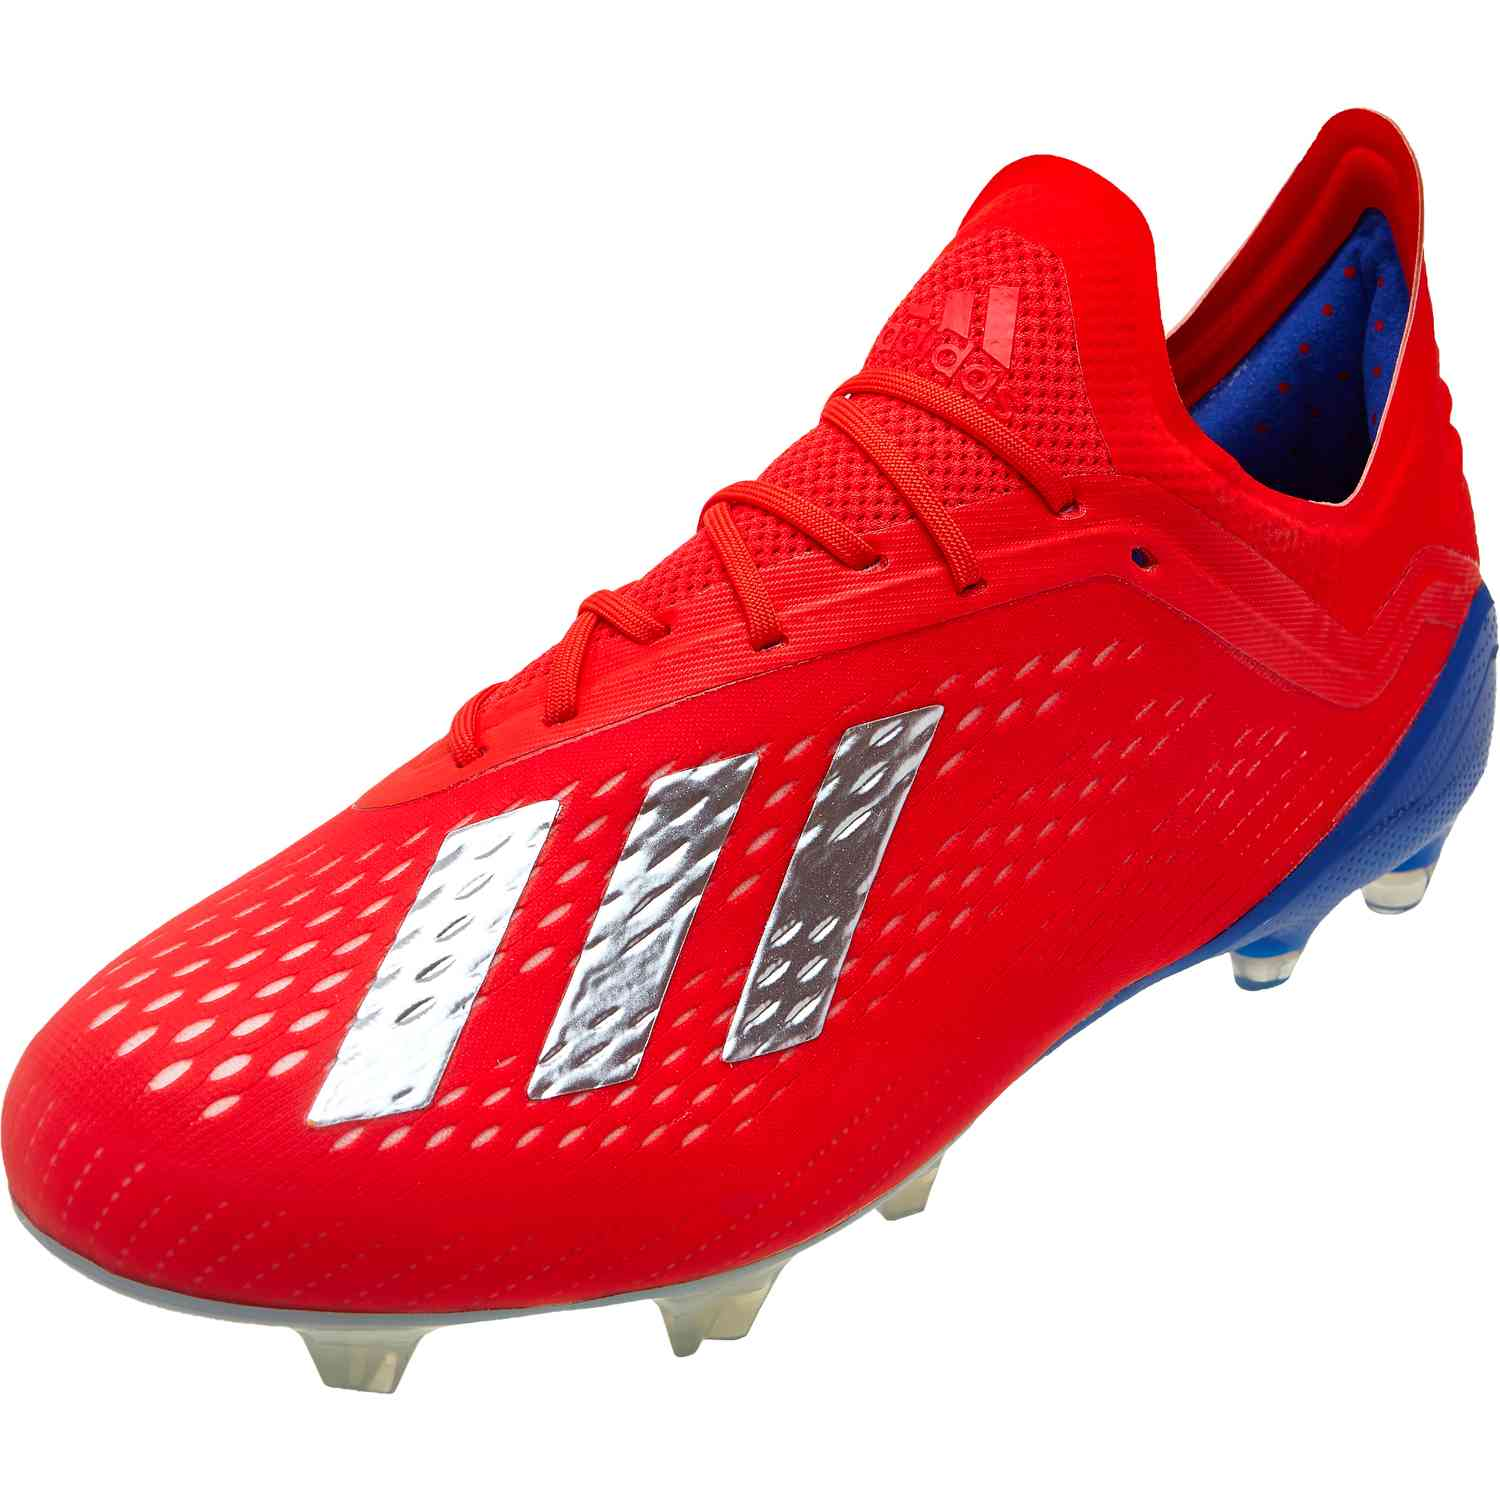 timeless design 5ab3c 7bfe1 adidas X 18.1 FG – Exhibit Pack